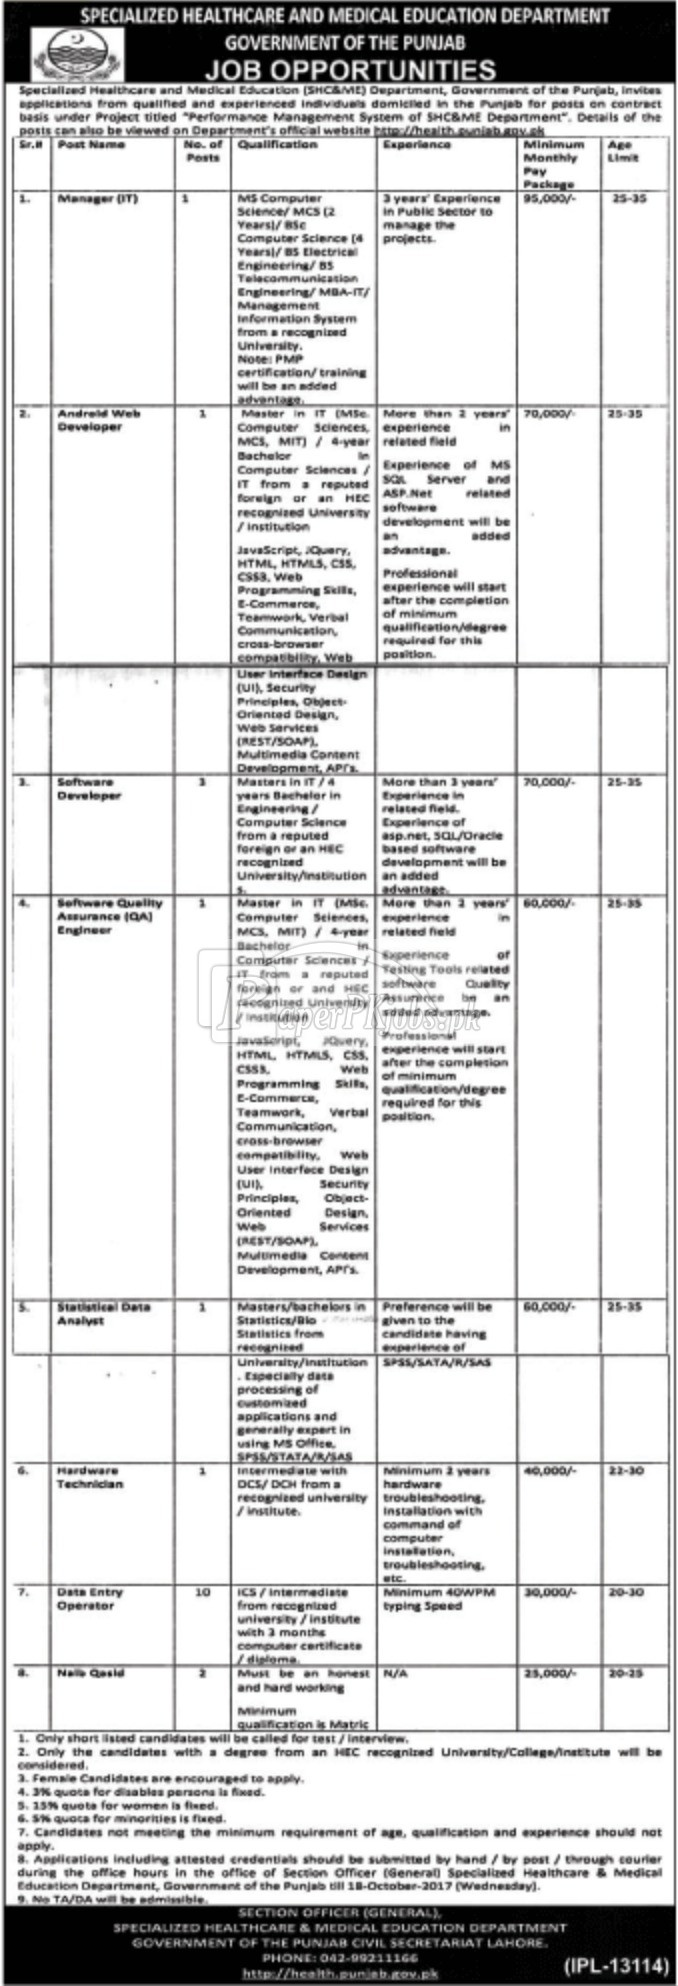 Specialized Healthcare & Medical Education Department Punjab Jobs 2017